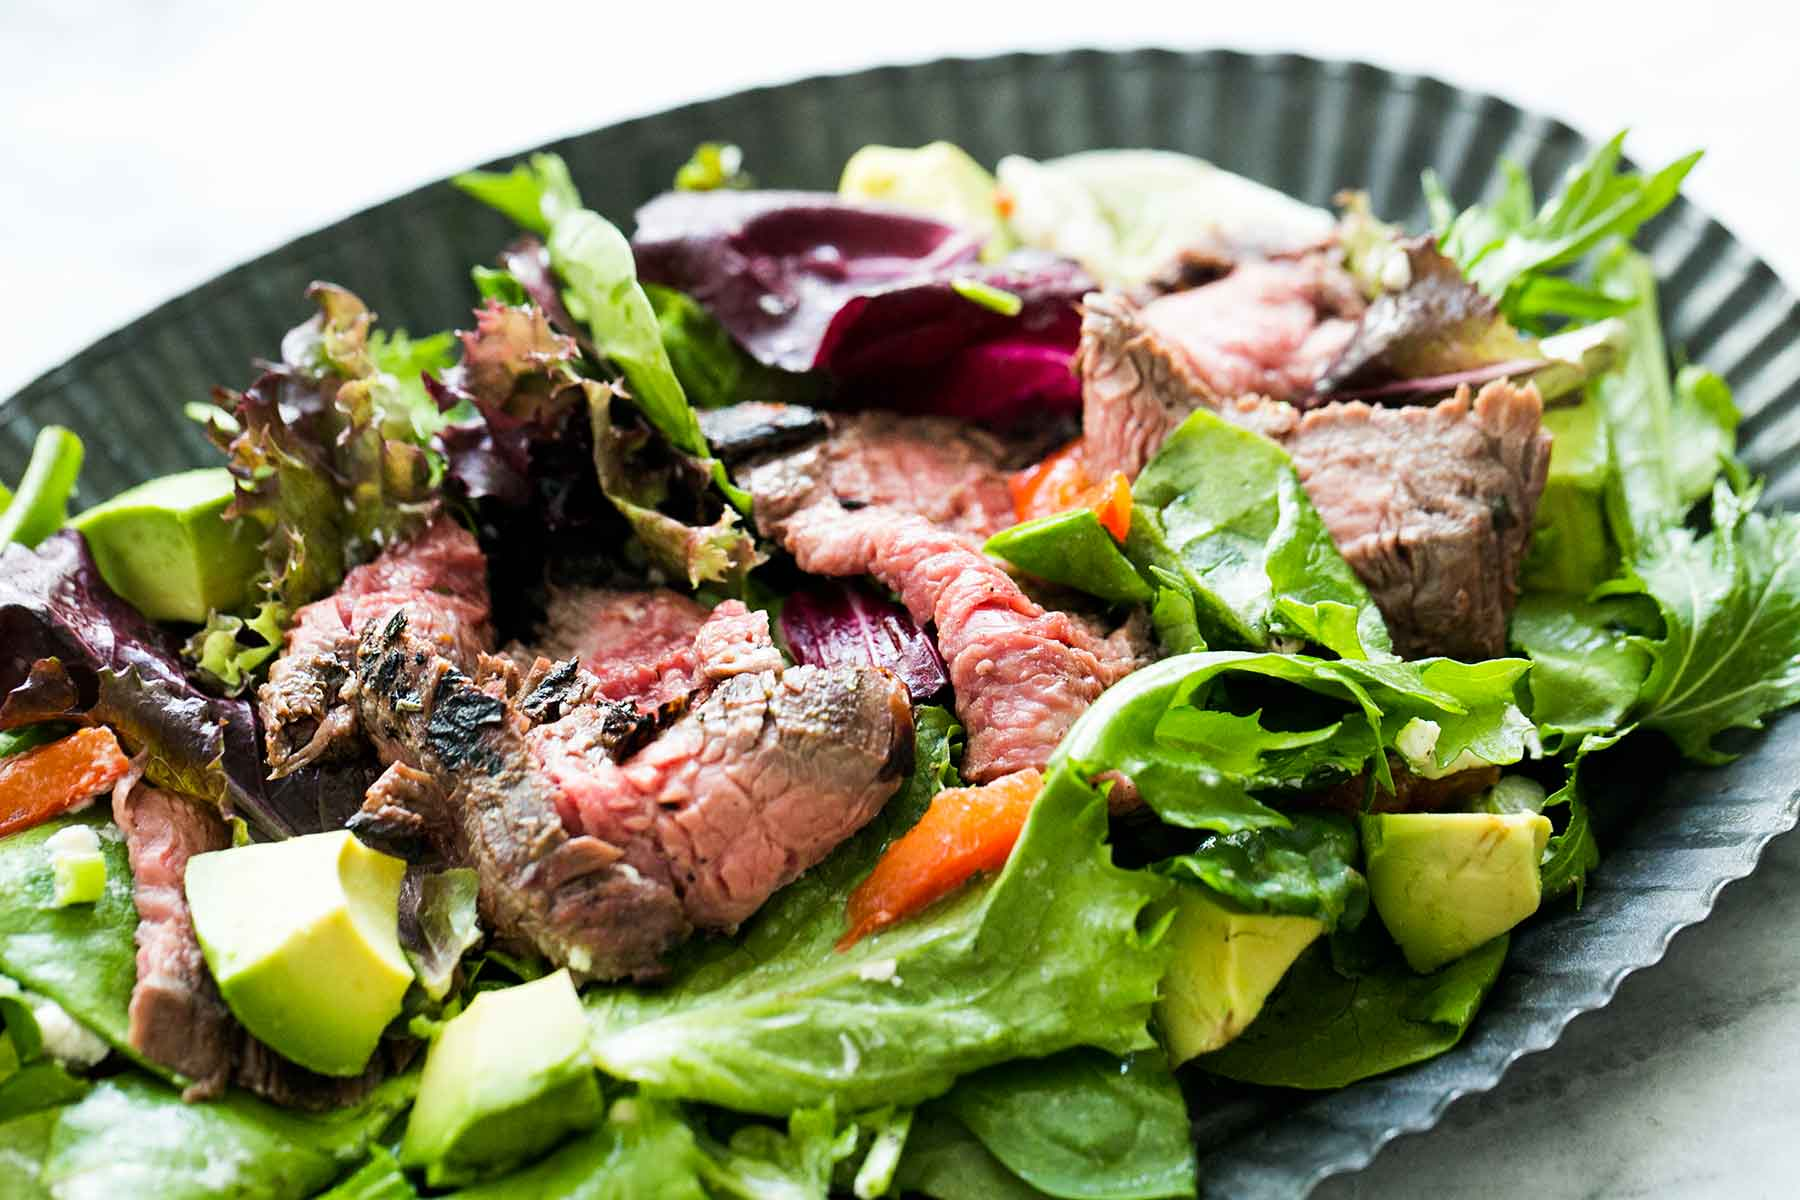 Grilled Steak Mushroom and Rocket Salad